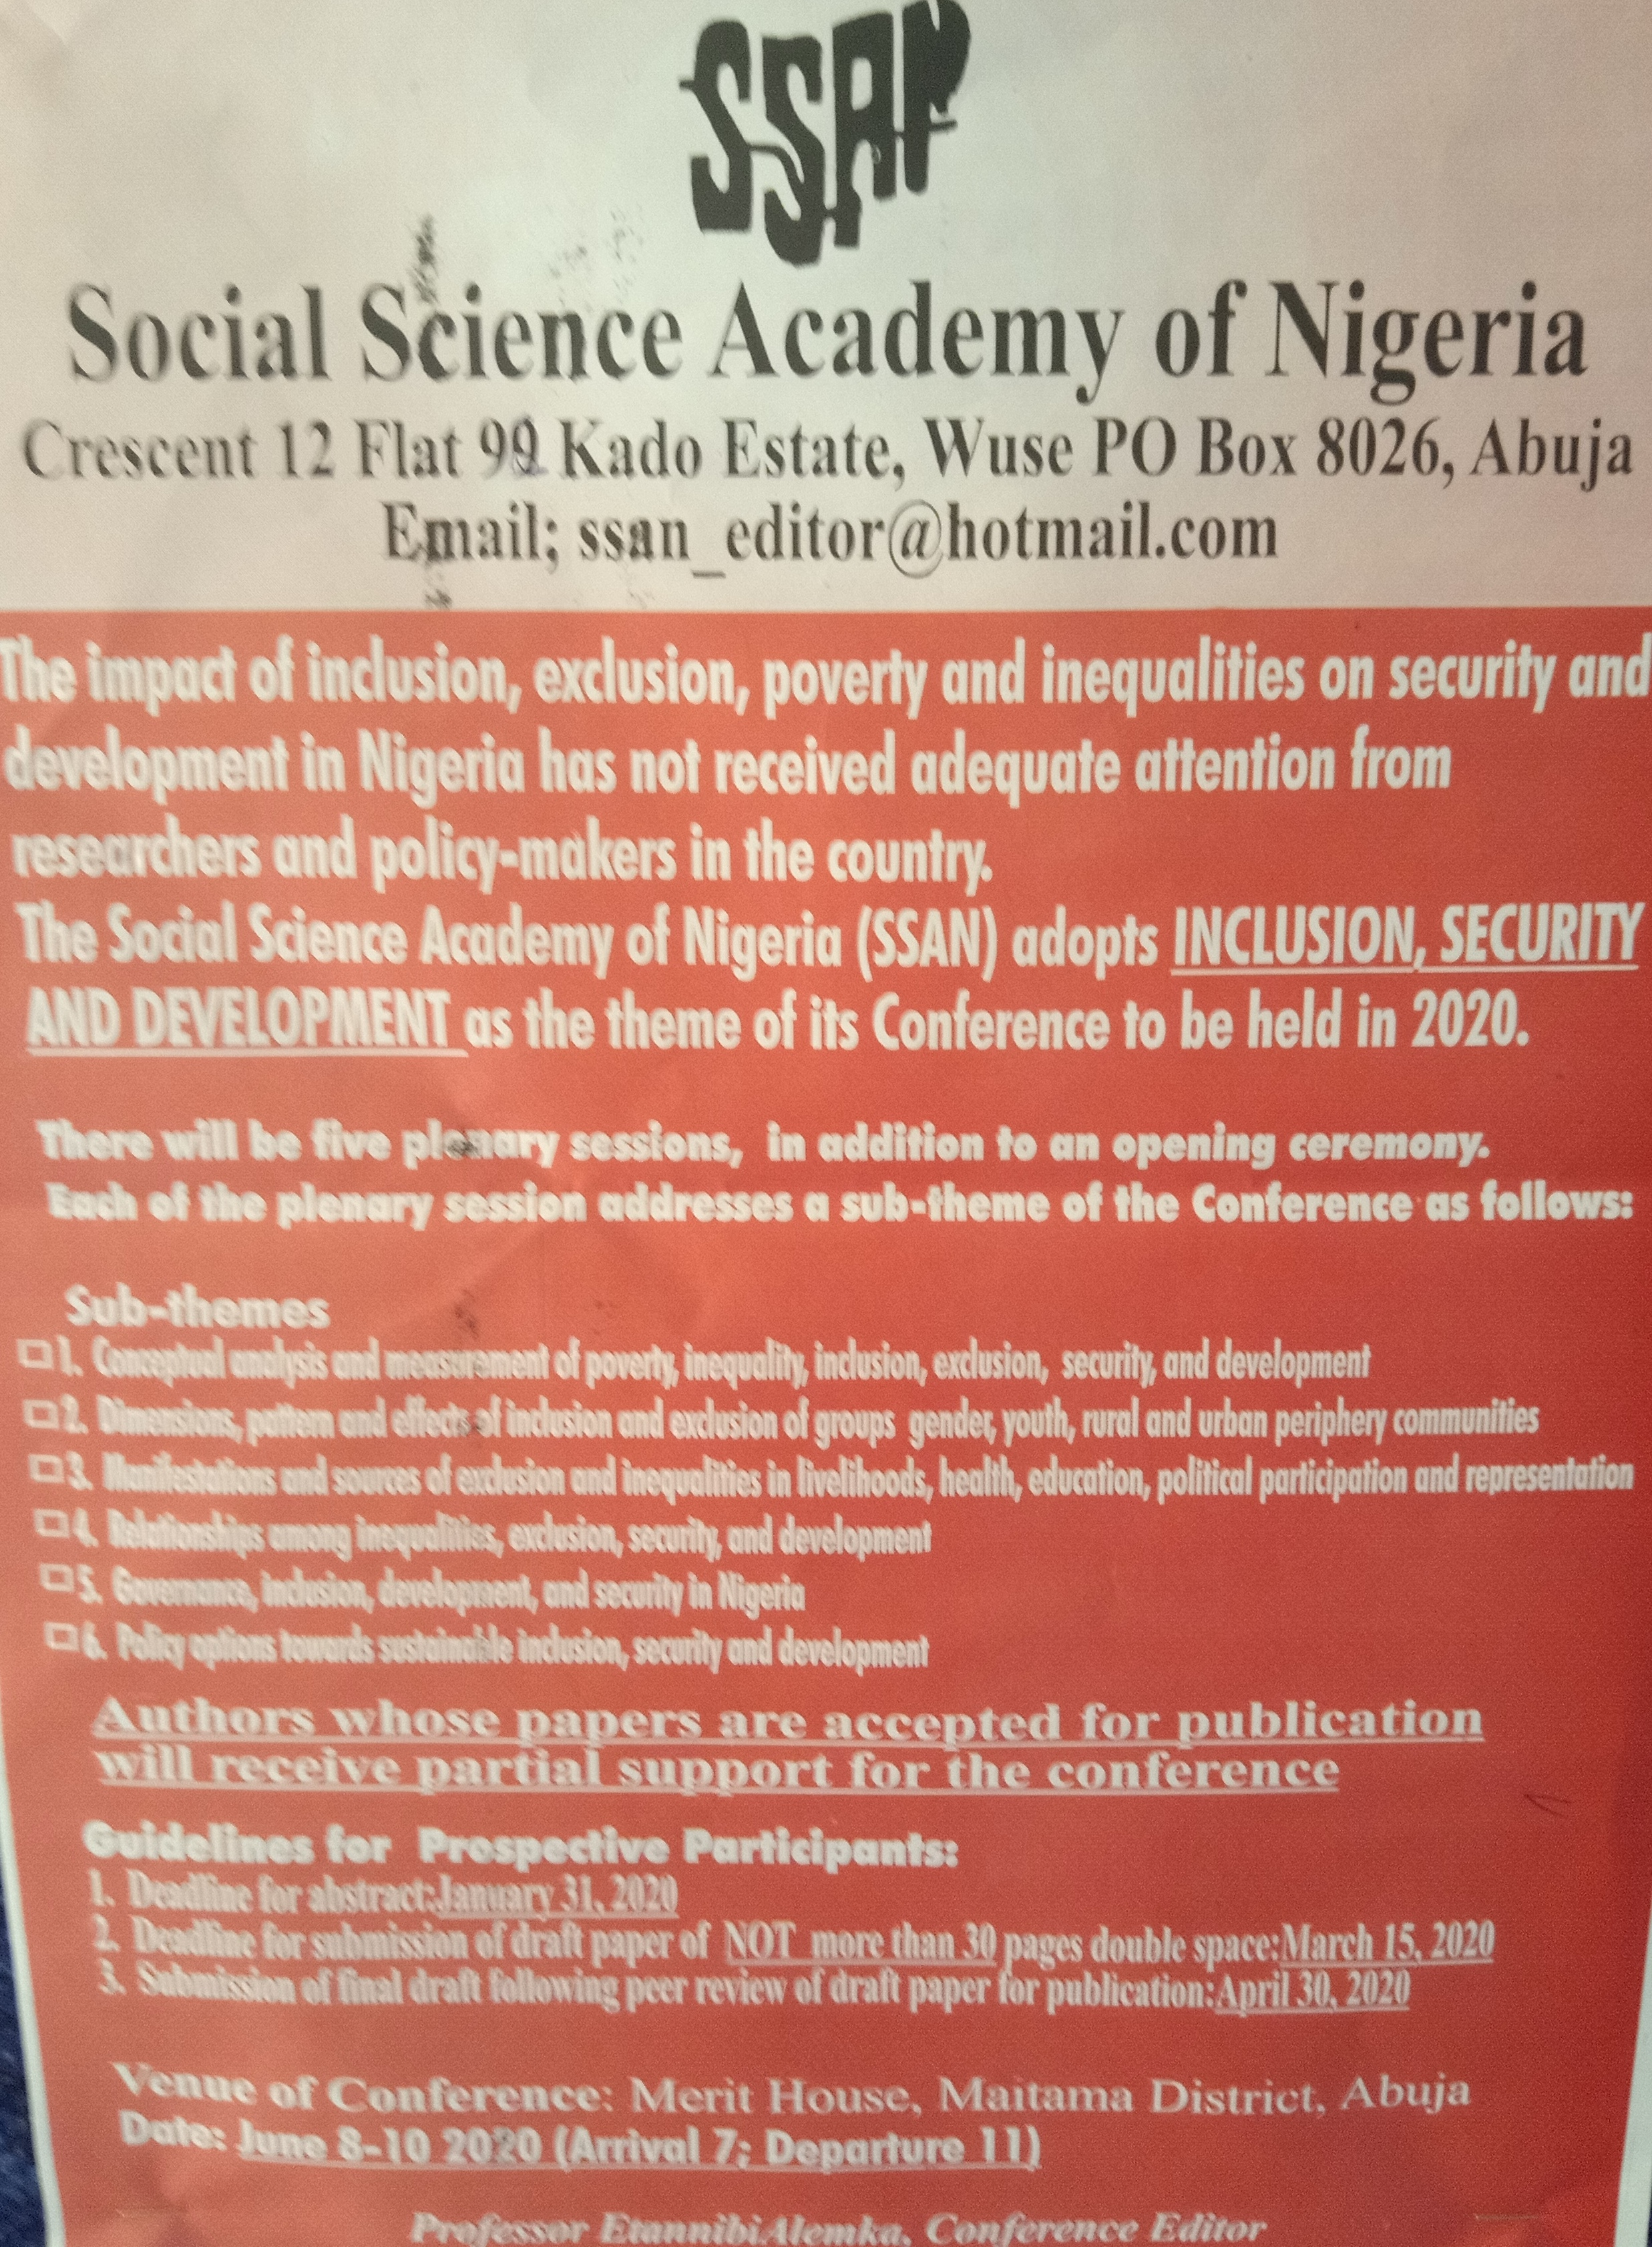 Social Science Academy of Nigeria Plans Conference on Inclusion, Security and Development